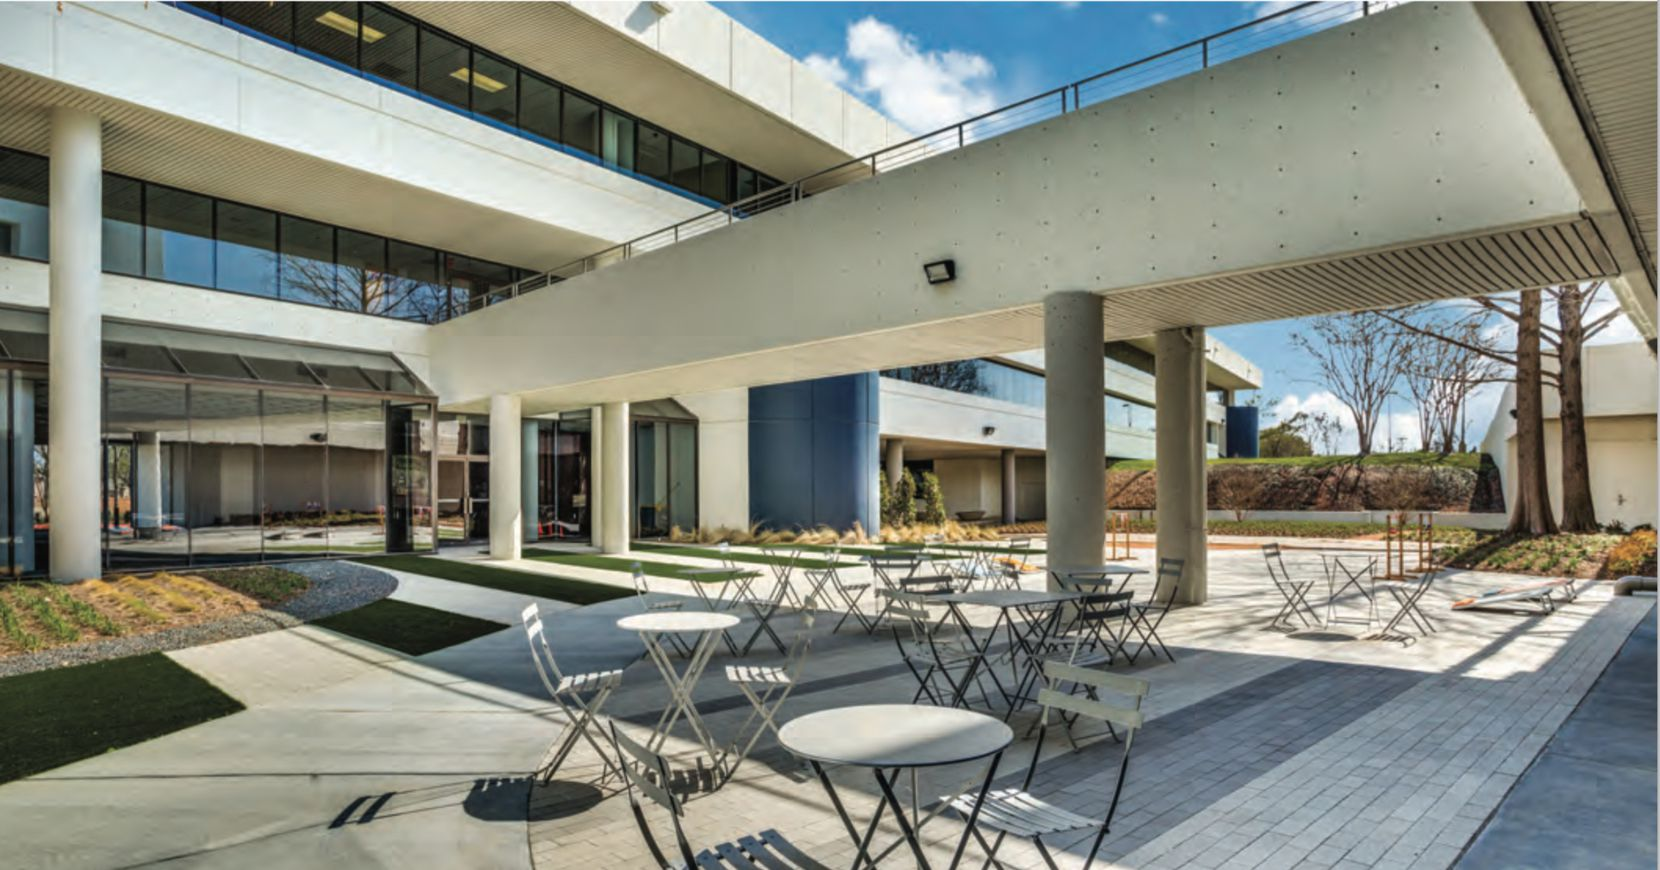 Renovations to the Las Colinas buildings included a new conference center, lounge areas and outdoor seating areas.